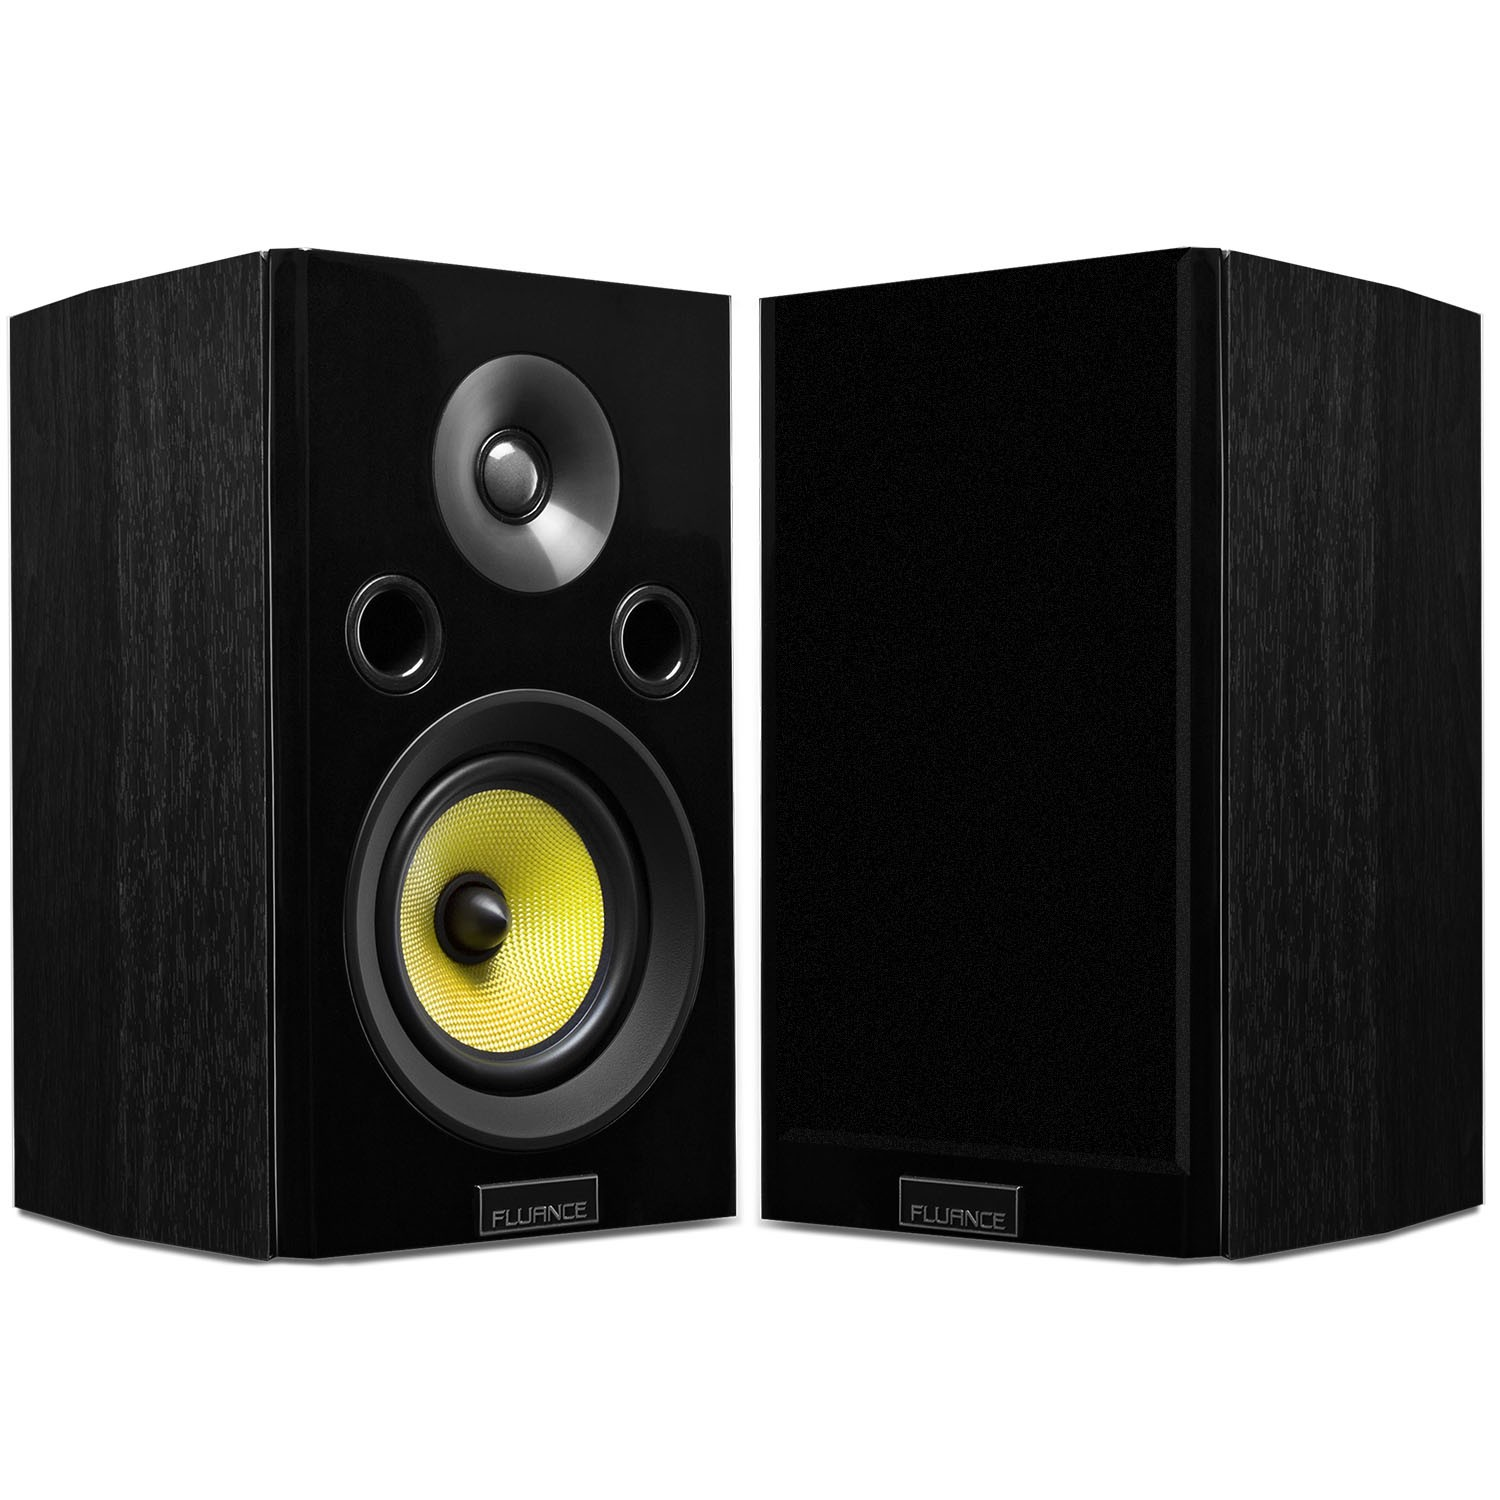 hfs signature series two way bookshelf surround sound speakers fluance